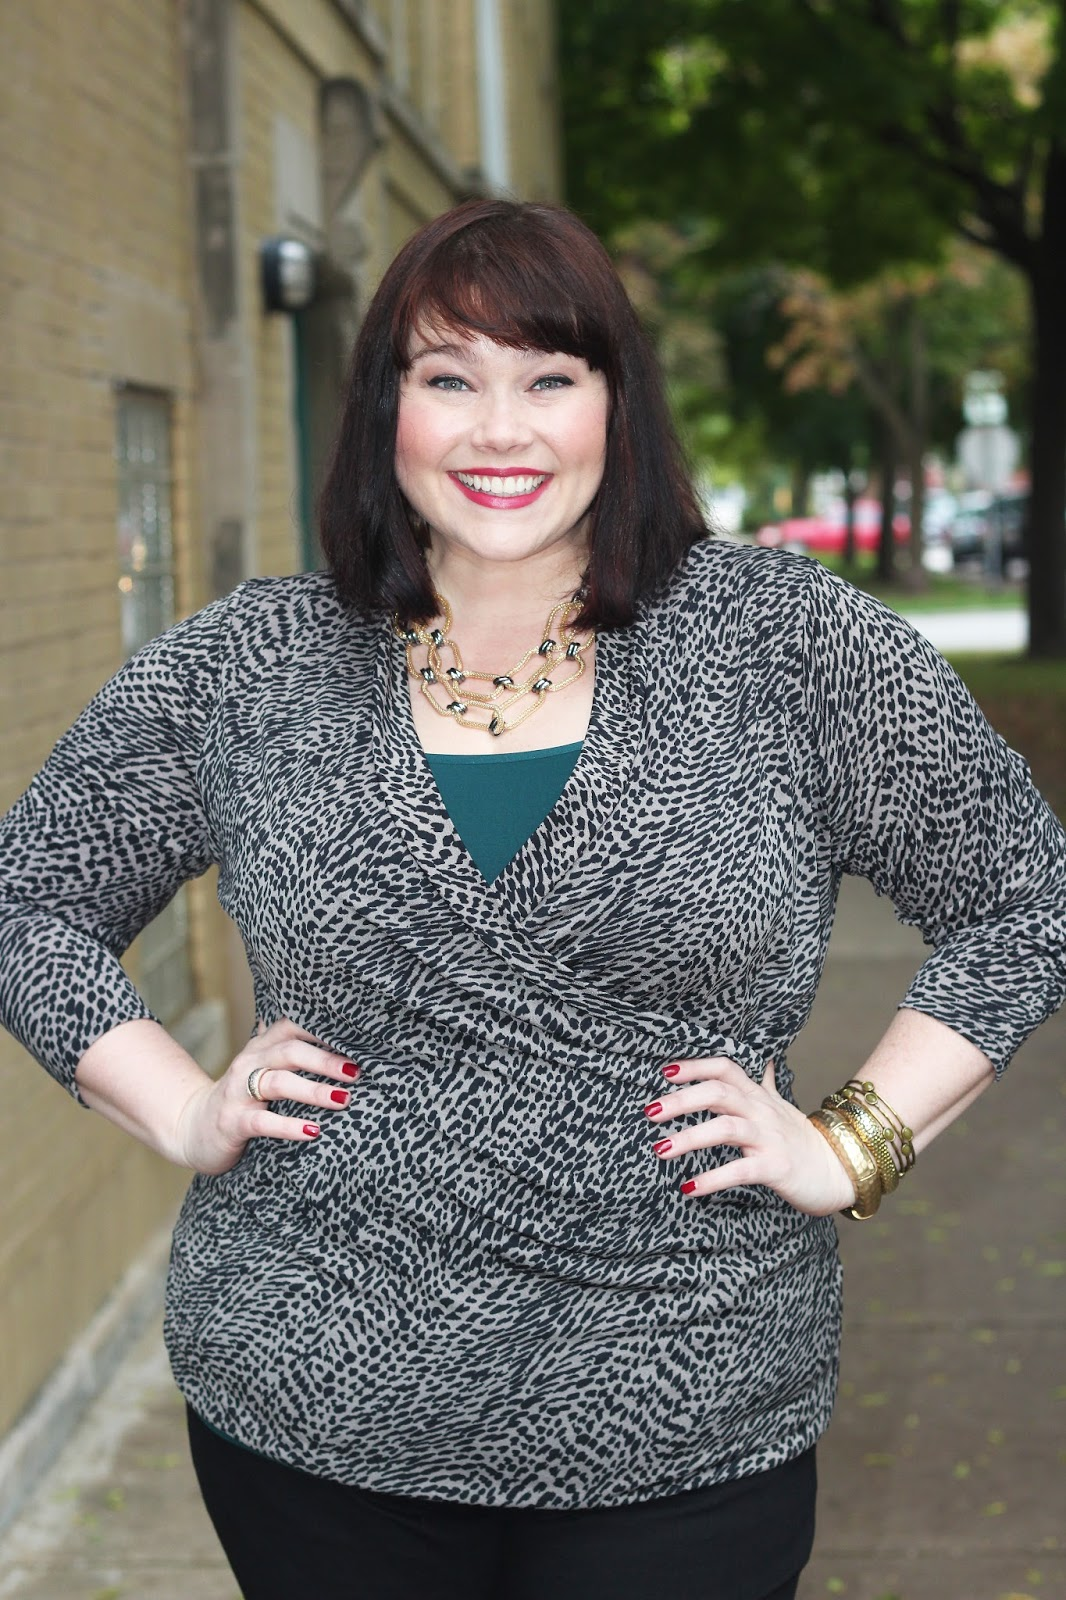 1a3c65b9911 There s plenty more adorable fall outfits for plus size fashionistas to  choose from on Kohls.com